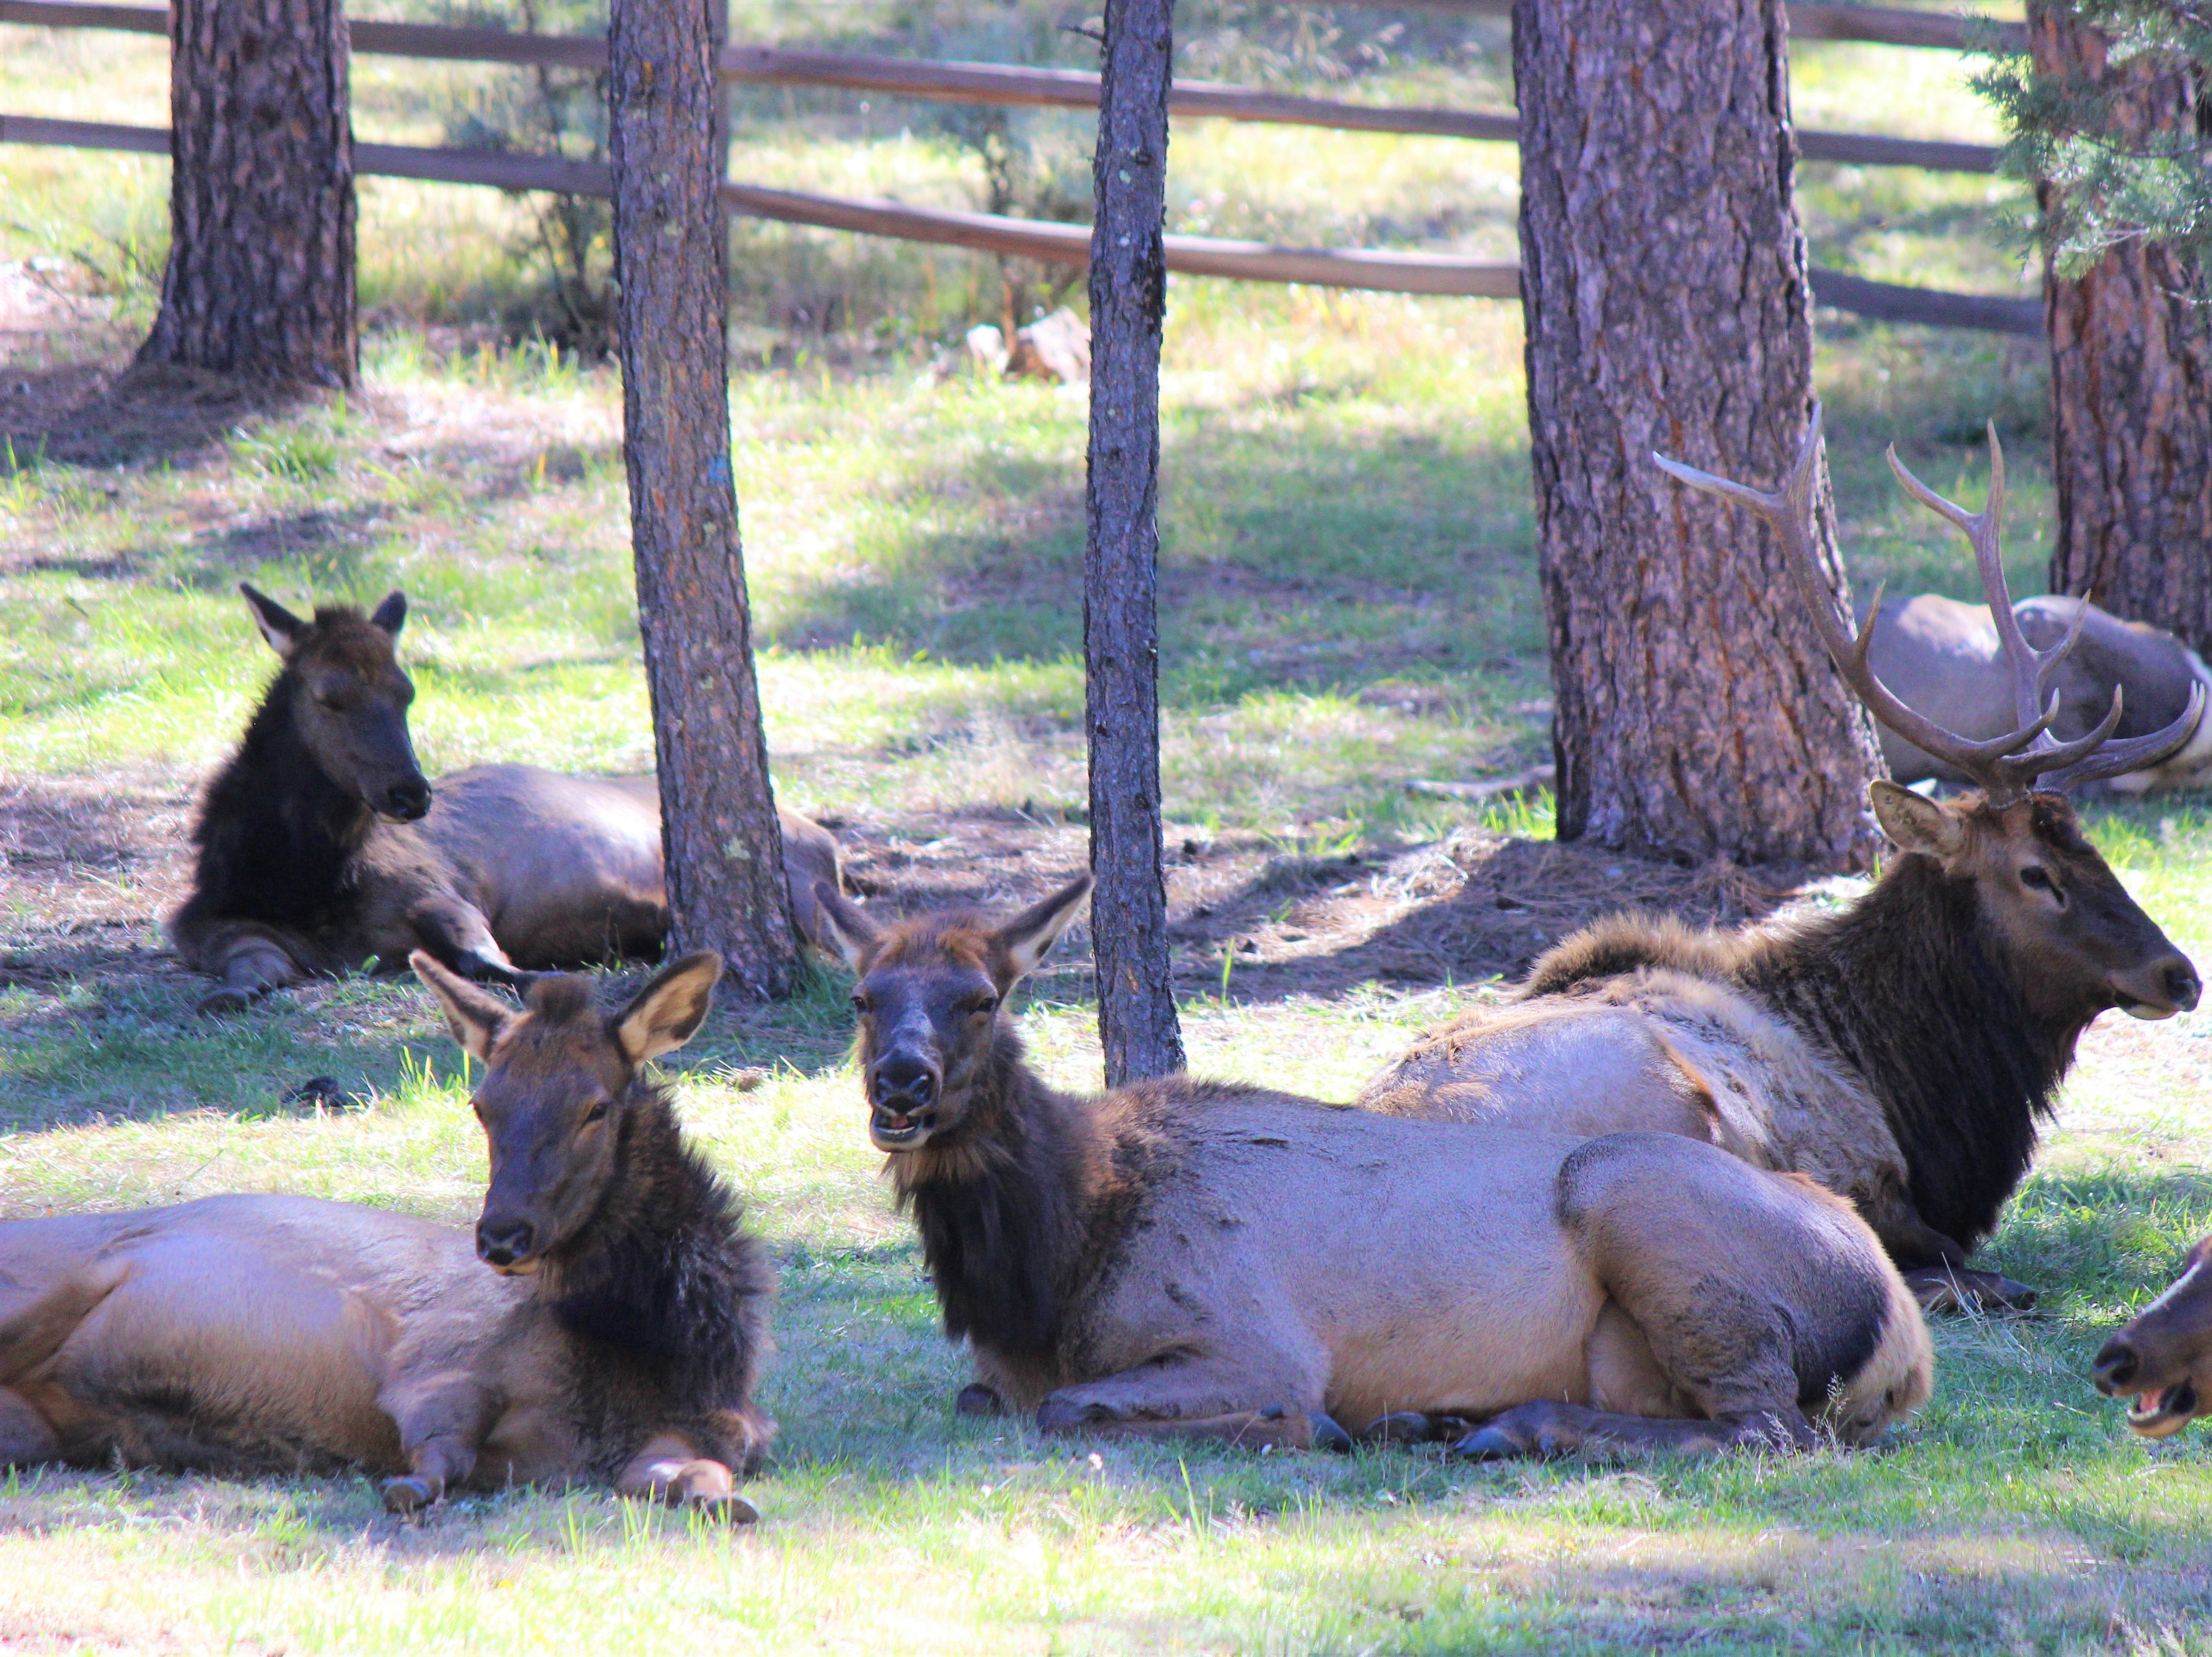 These female elk seem to be smiling for the camera as the Bull behind them takes notice of human presence near his harem A male will have at least six females and their yearlings around him during mating season.